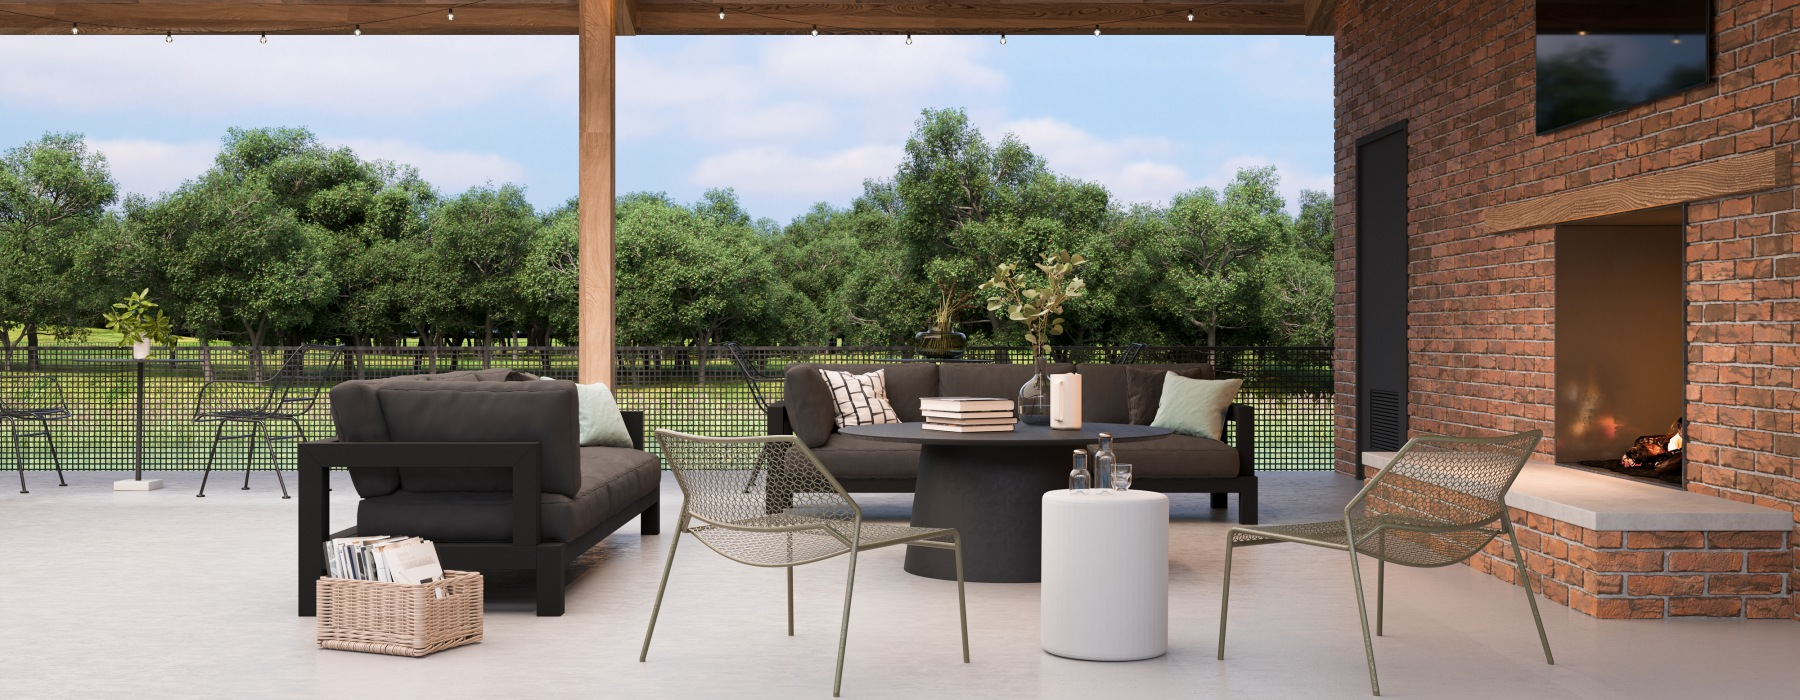 Outdoor Entertainment & Grilling Area